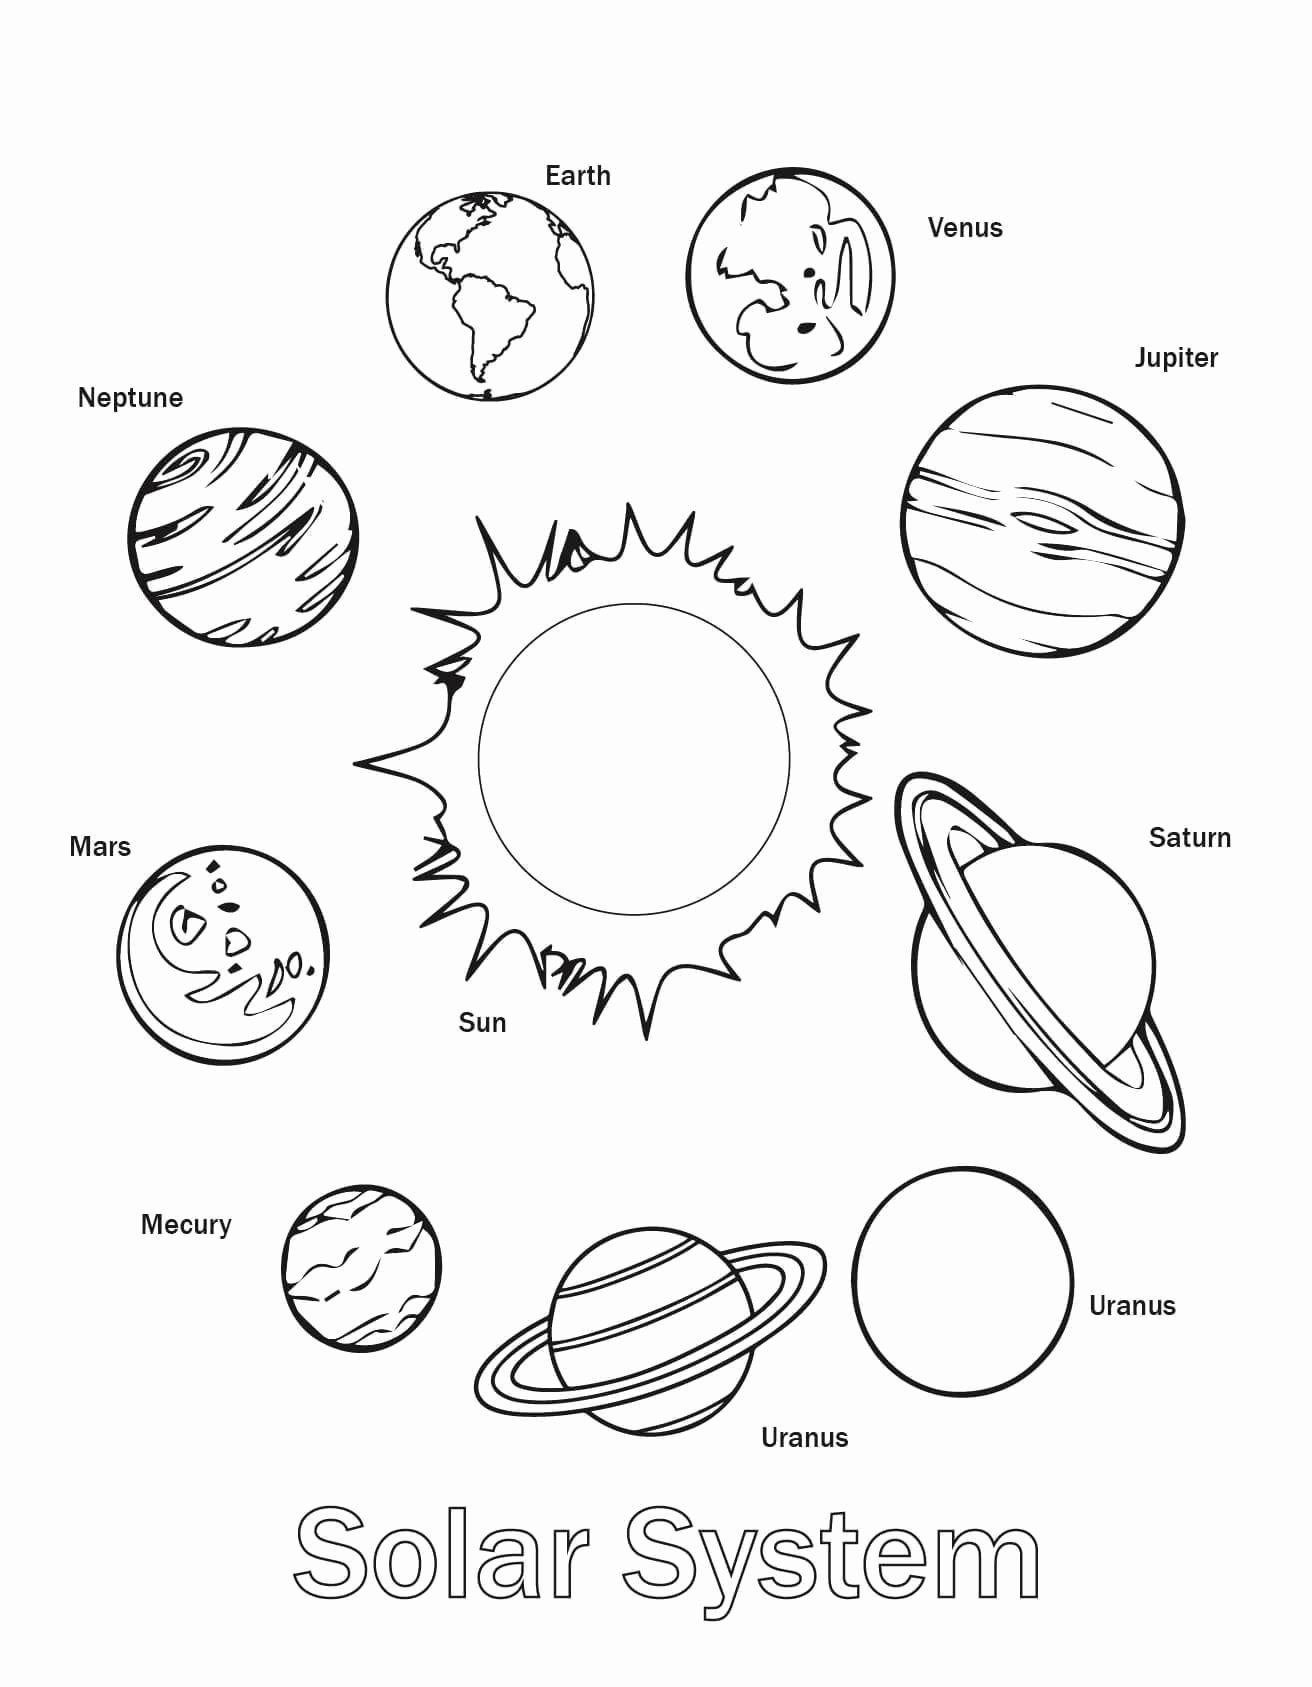 Solar System Worksheets for Preschoolers Fresh Free Printable solar System Coloring Pages for Kids